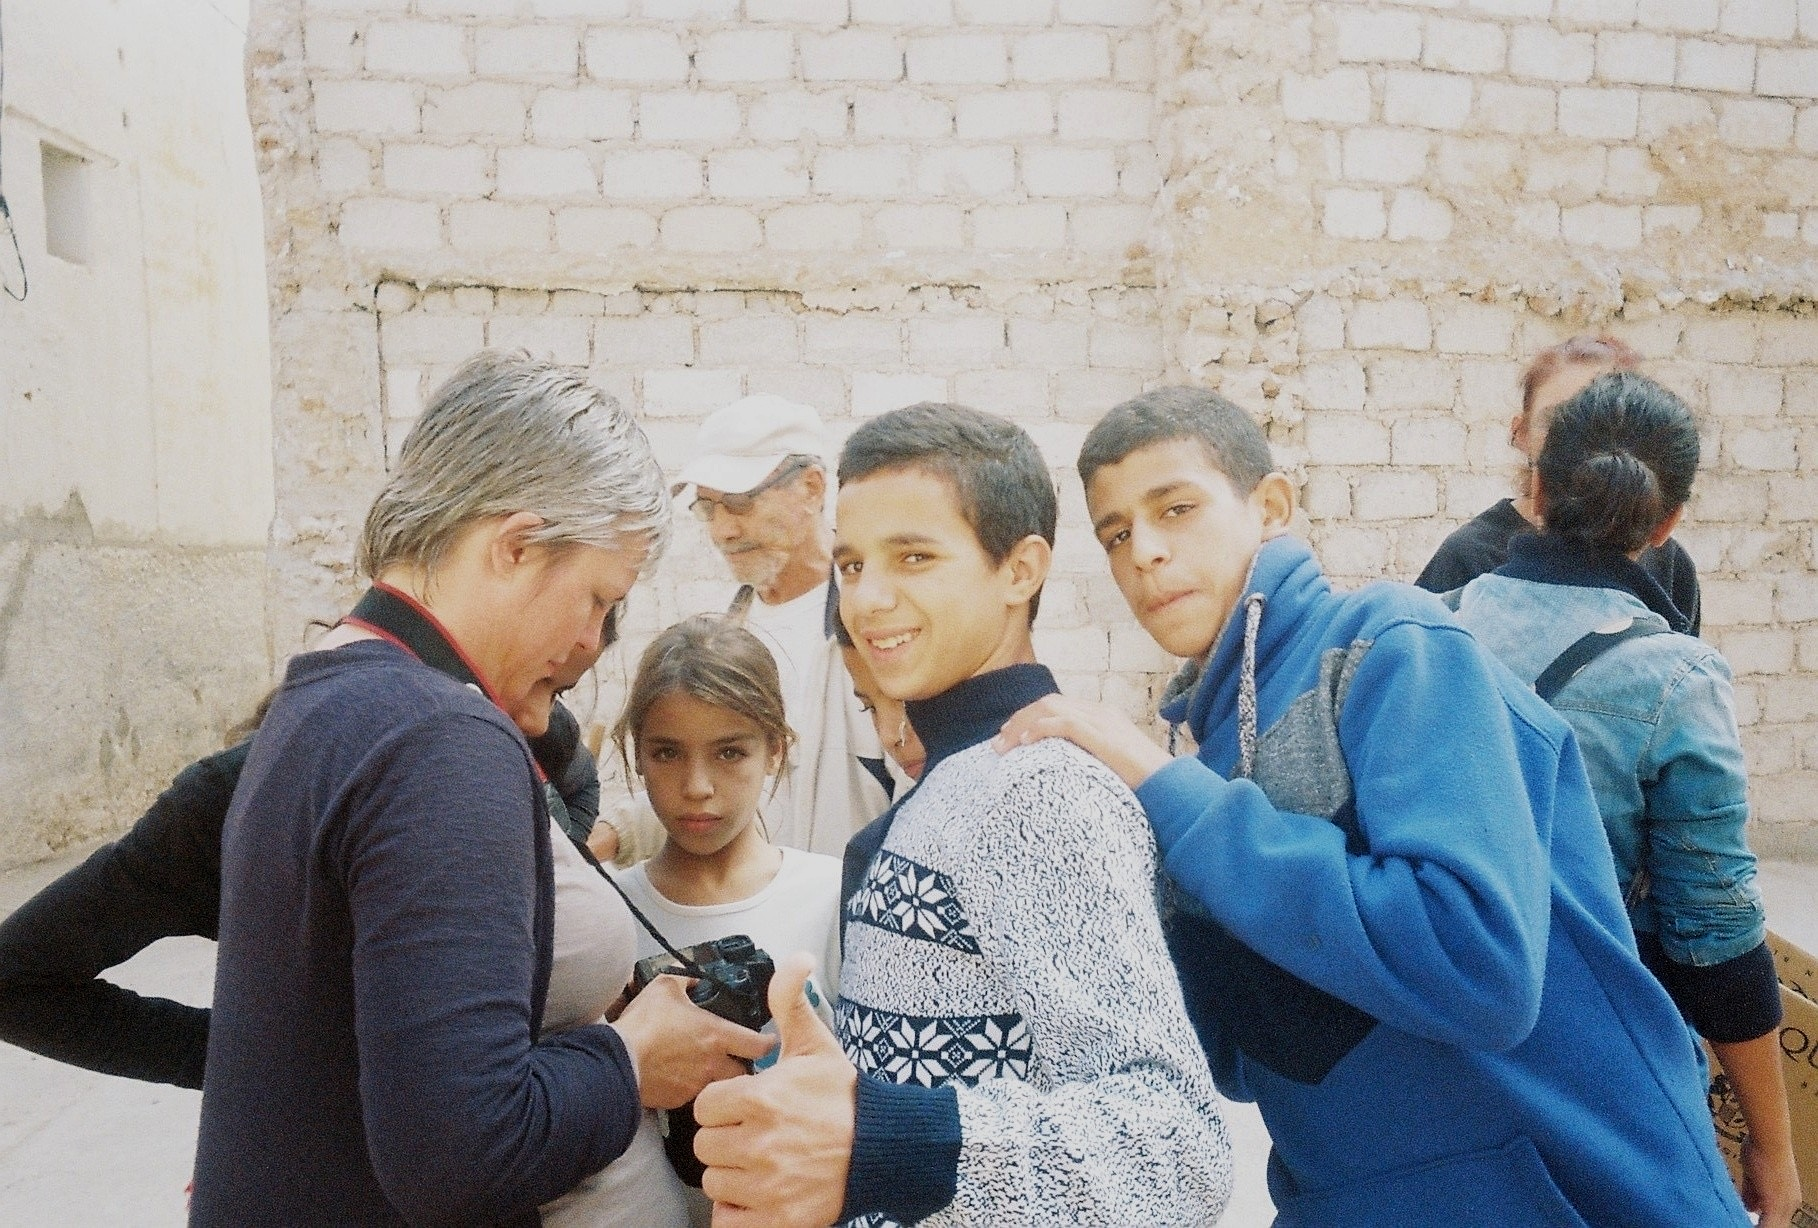 Cat Wilson with local children and youth, Sefrou, Morocco